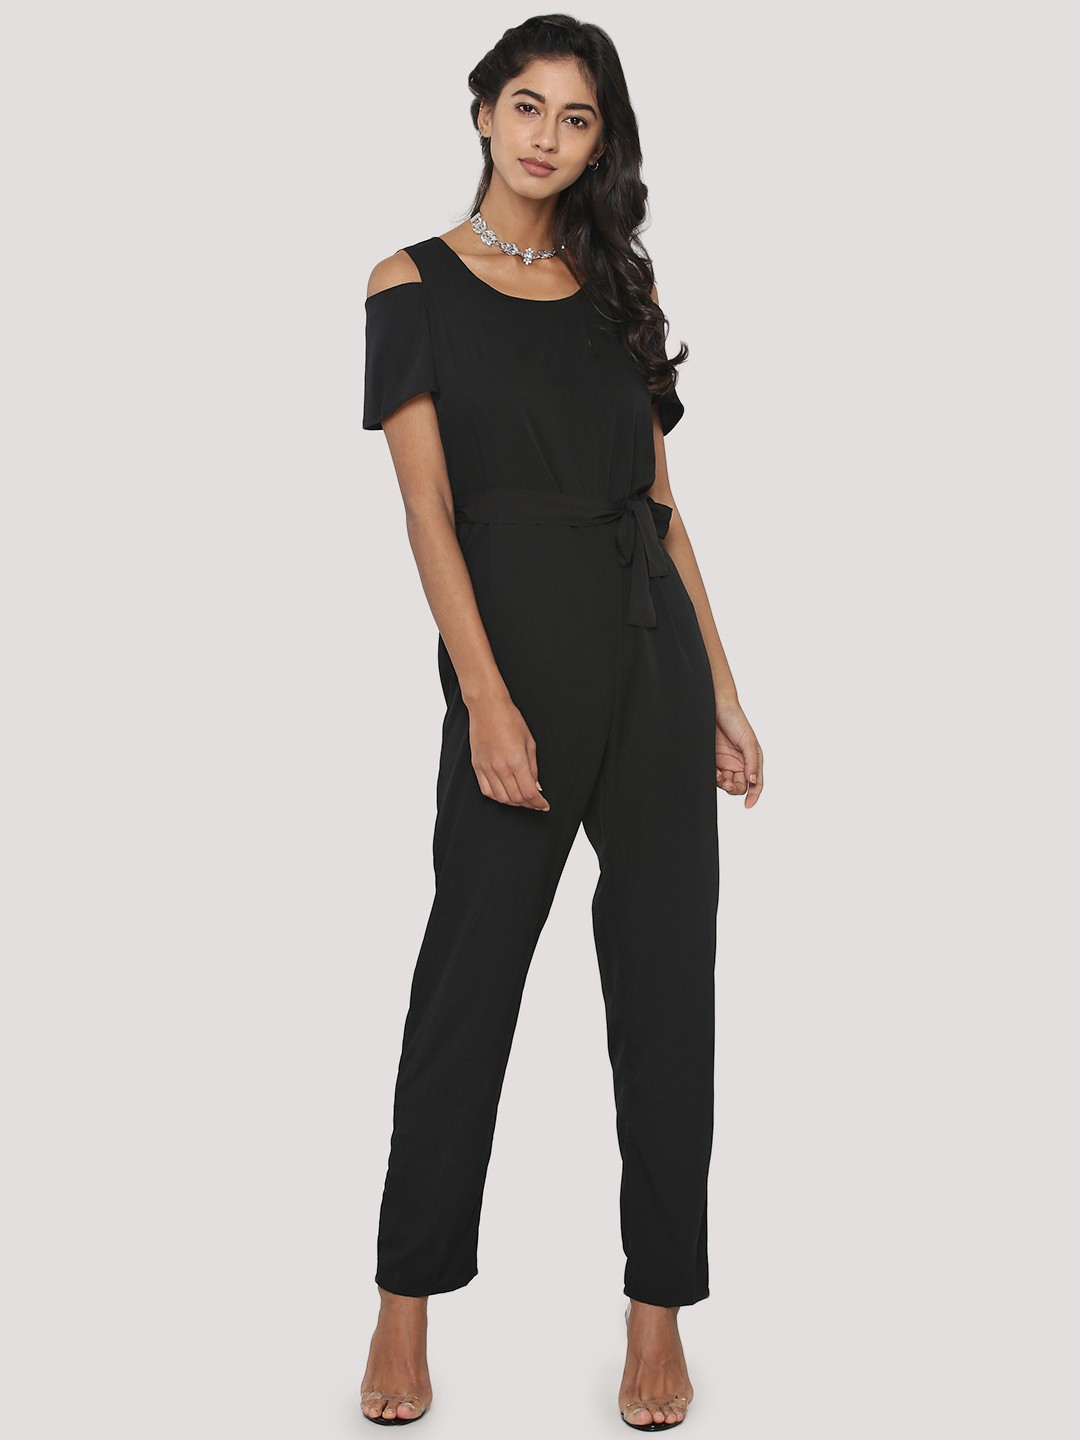 20 off on daisy street georgette jumpsuit with cold. Black Bedroom Furniture Sets. Home Design Ideas